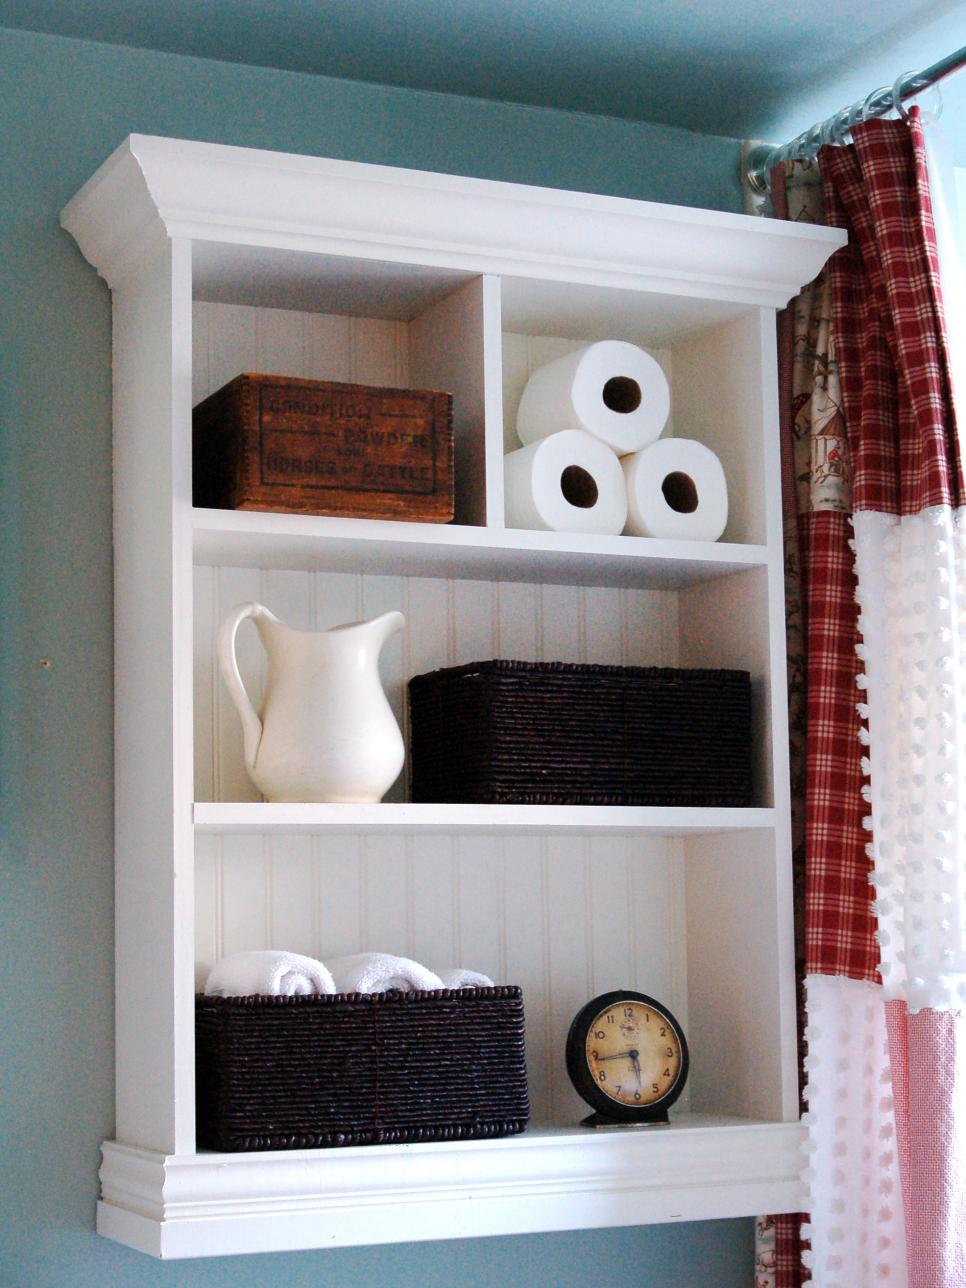 Small Bathroom Storage 12 clever bathroom storage ideas | hgtv